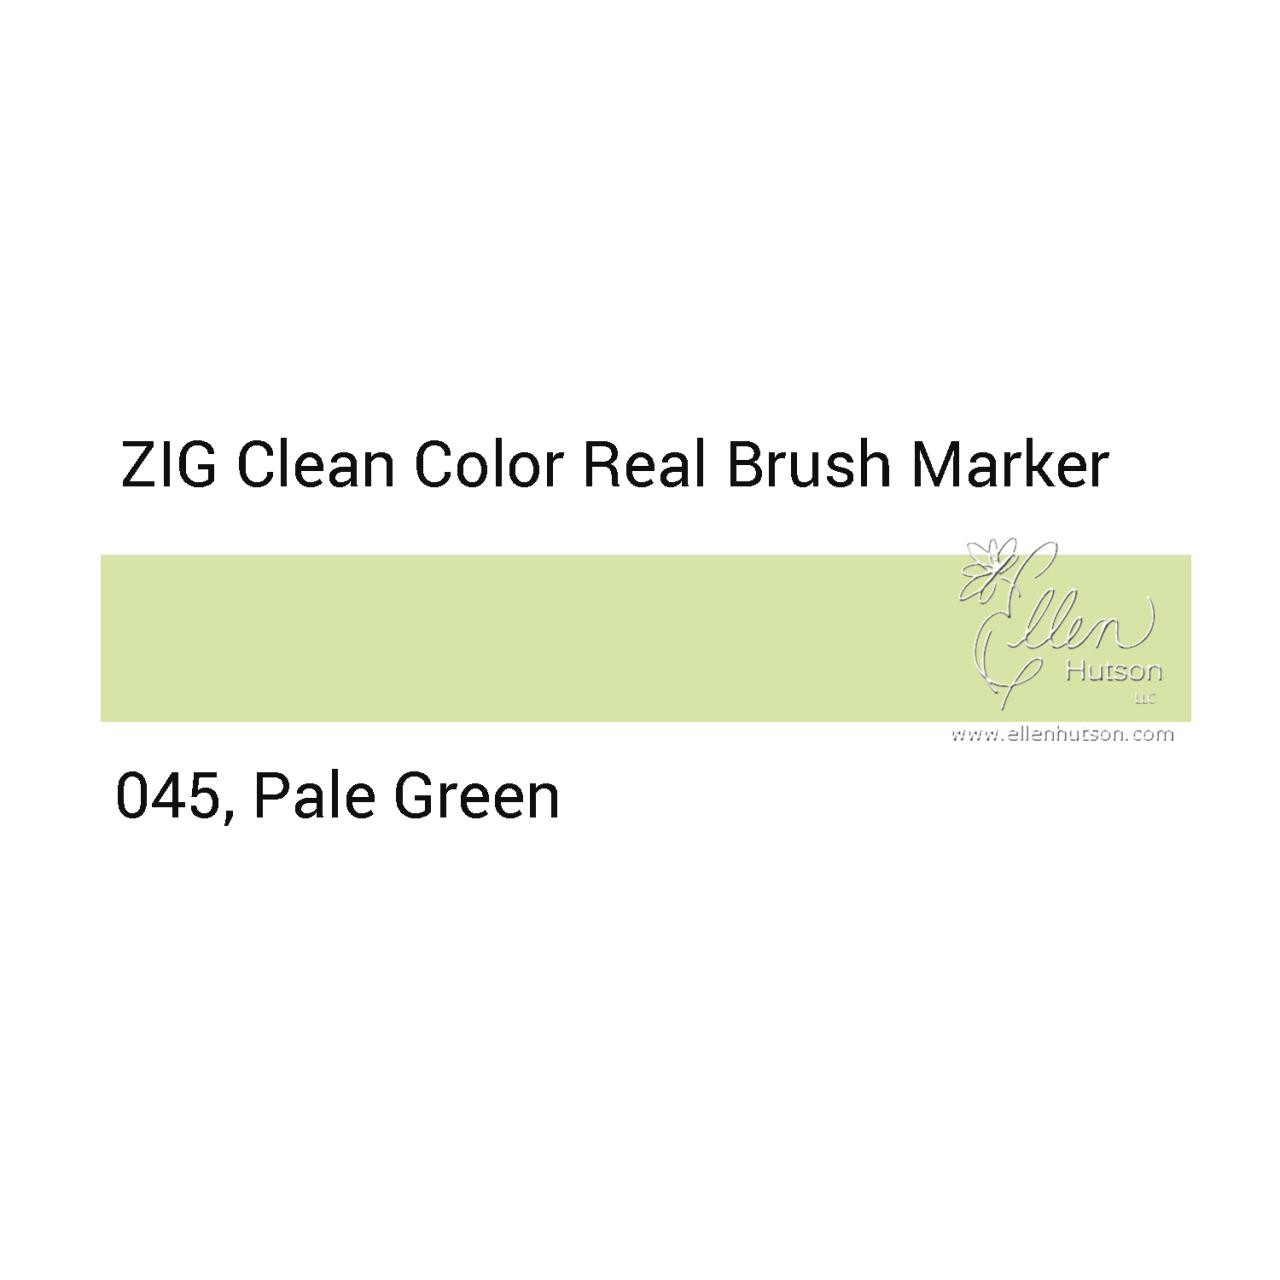 045 - Pale Green, ZIG Clean Color Real Brush Marker -